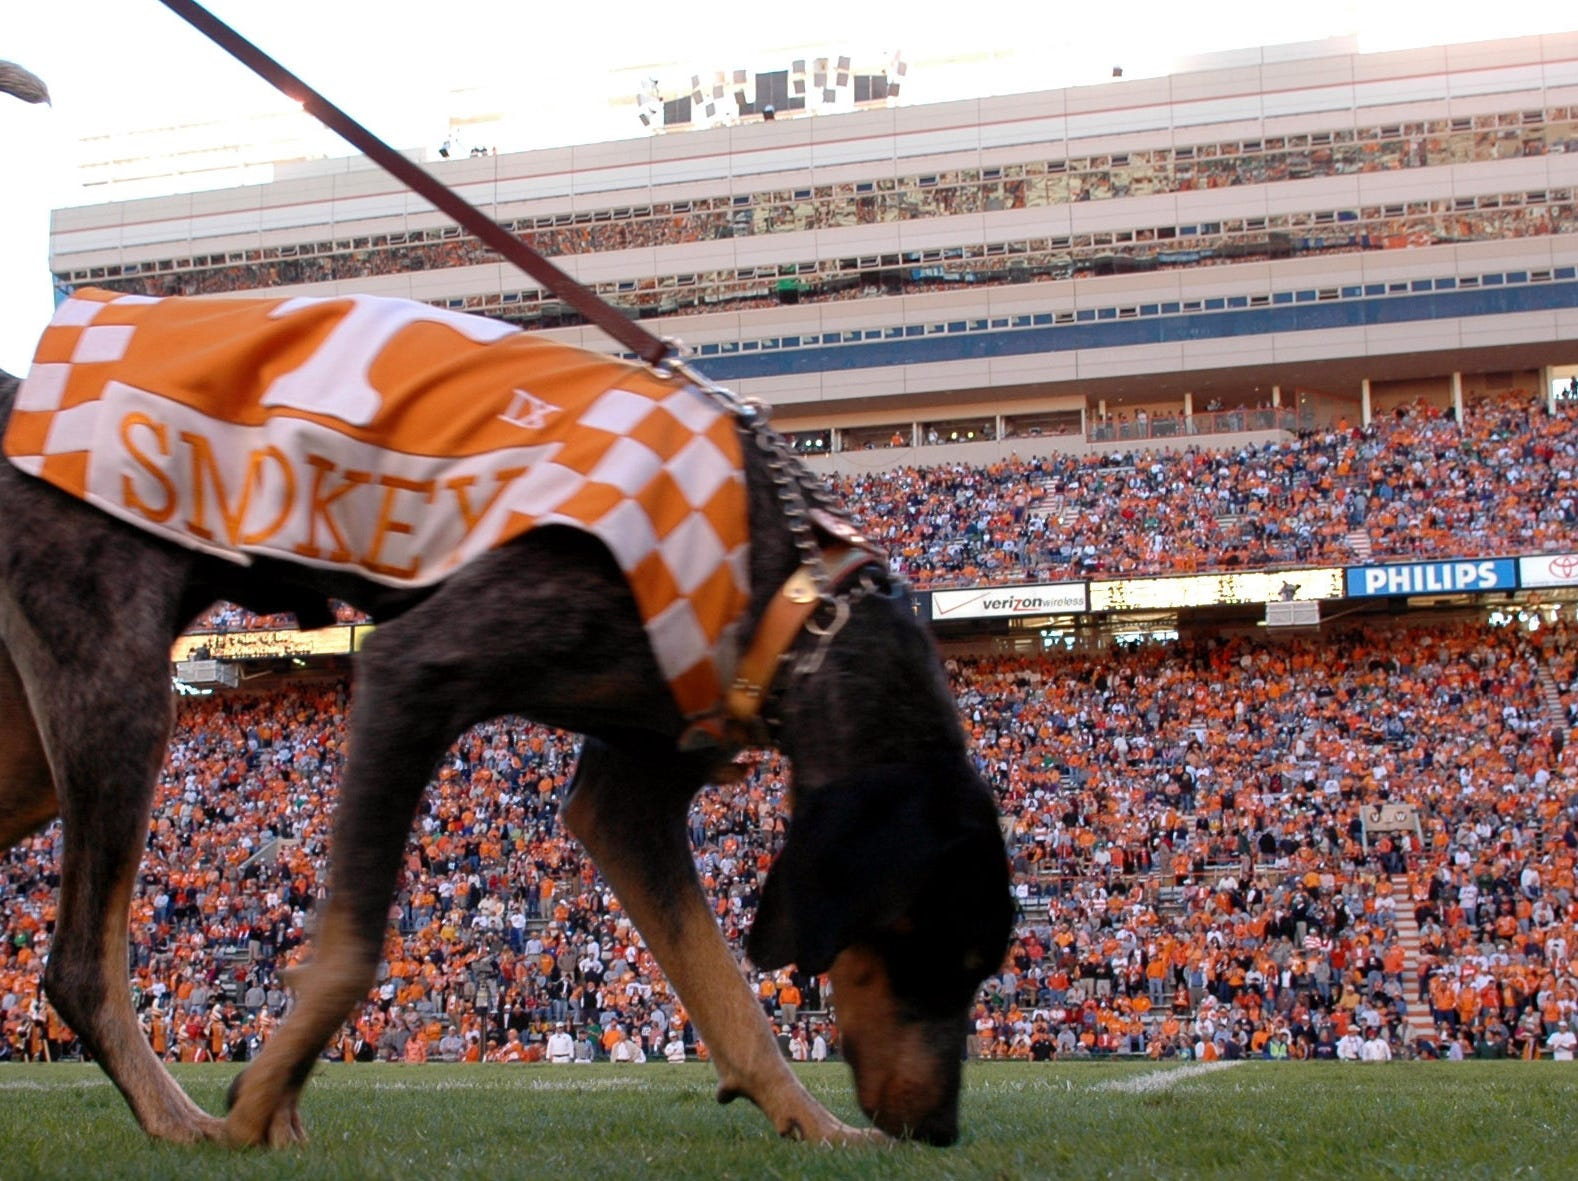 UT mascot Smokey IX, being the blue tick coonhound that he is, has his nose to the ground as walks along the sideline prior to leading the team through the T Saturday at Neyland Stadium. 11/06/2004